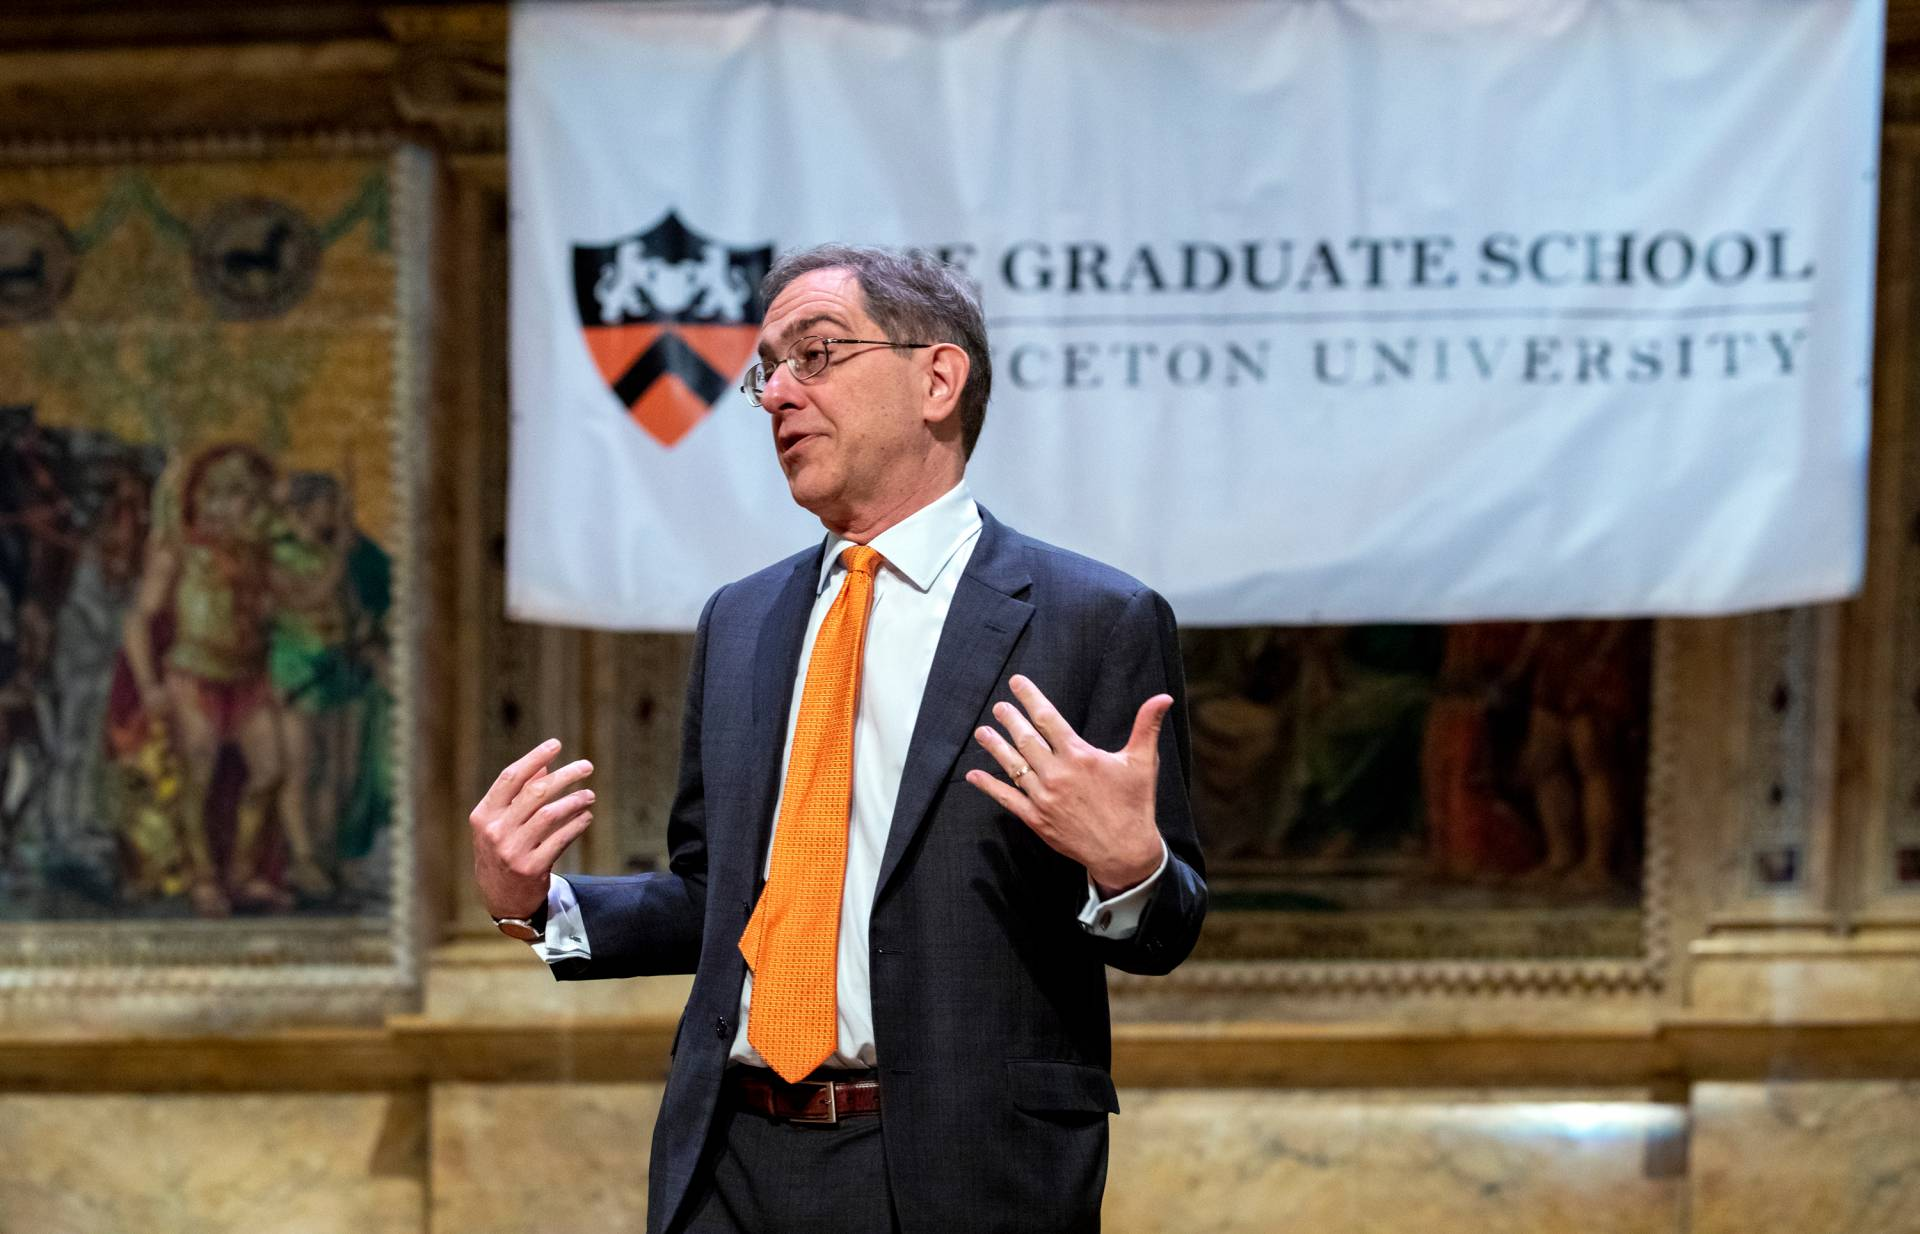 Christopher Eisgruber standing speaking in front of the Graduate School banner